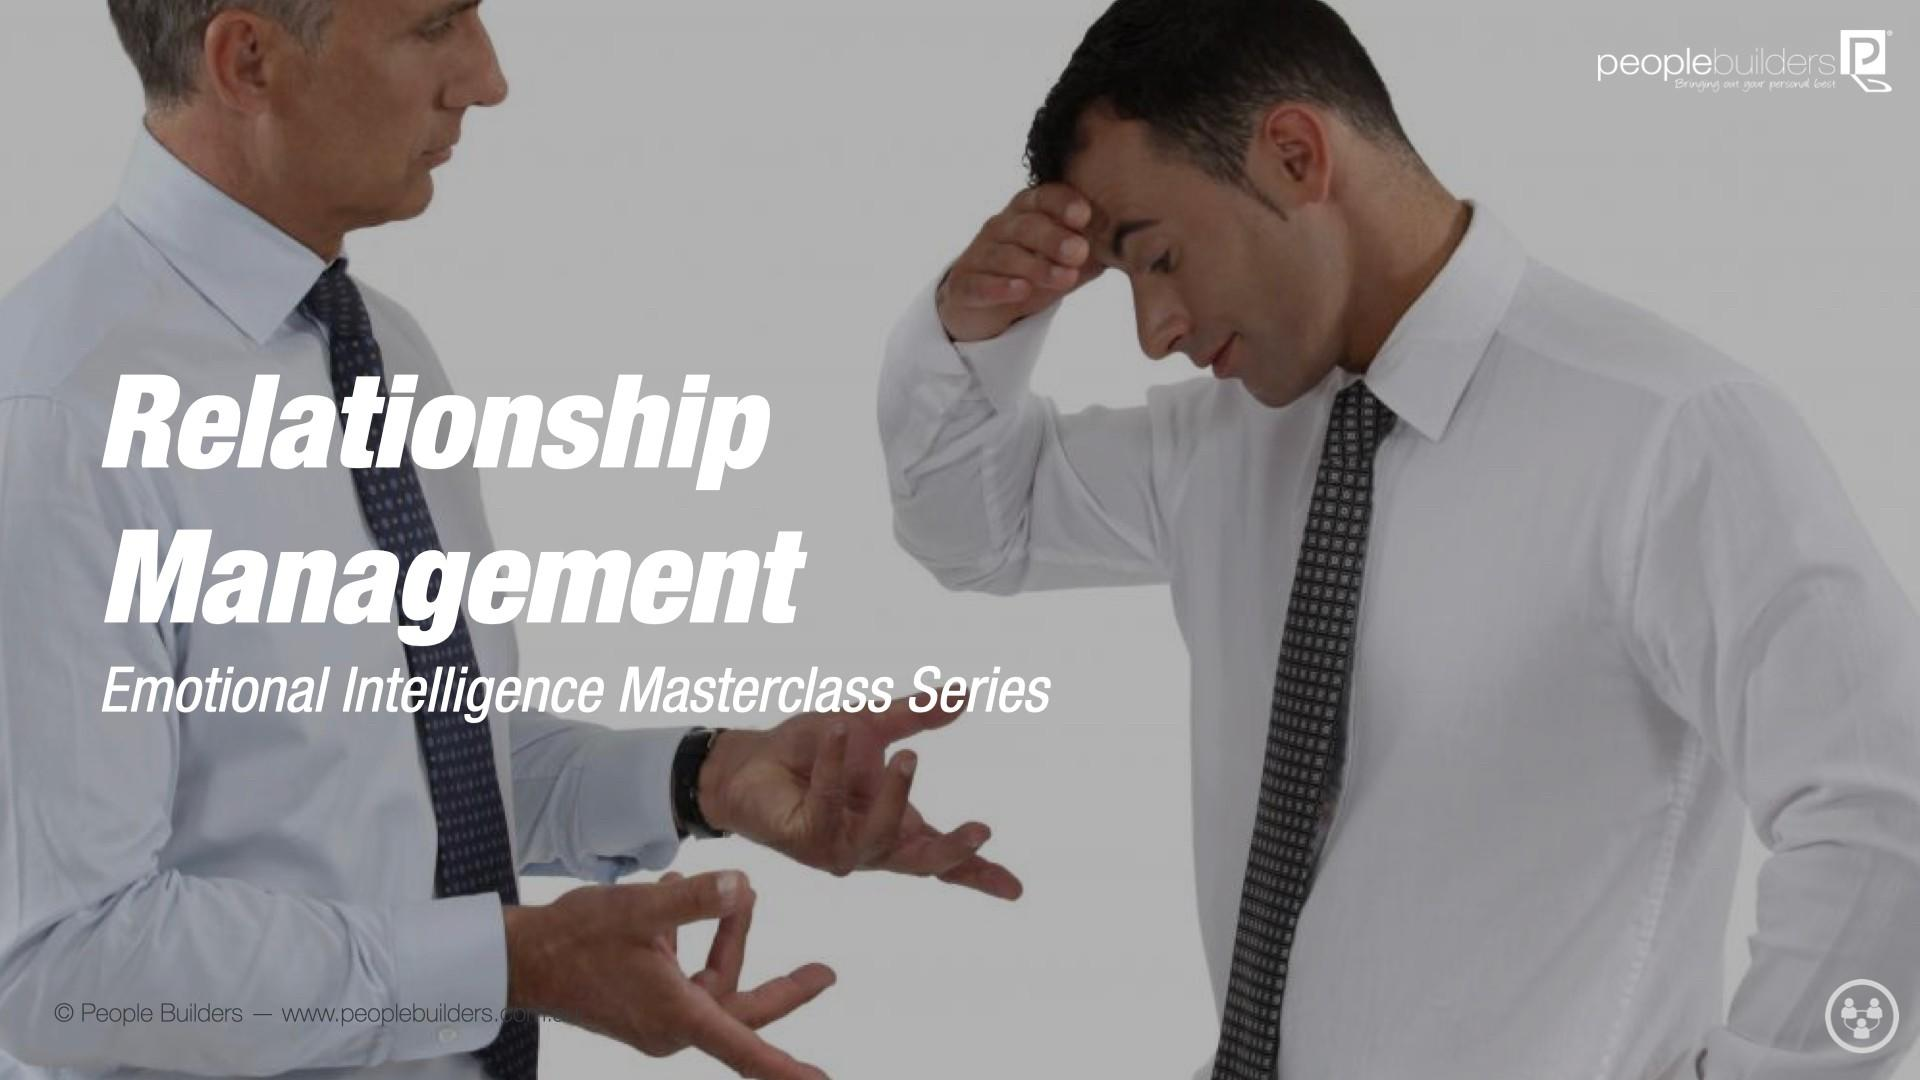 2 men in business suit arguing with each other because they lack relationship management.